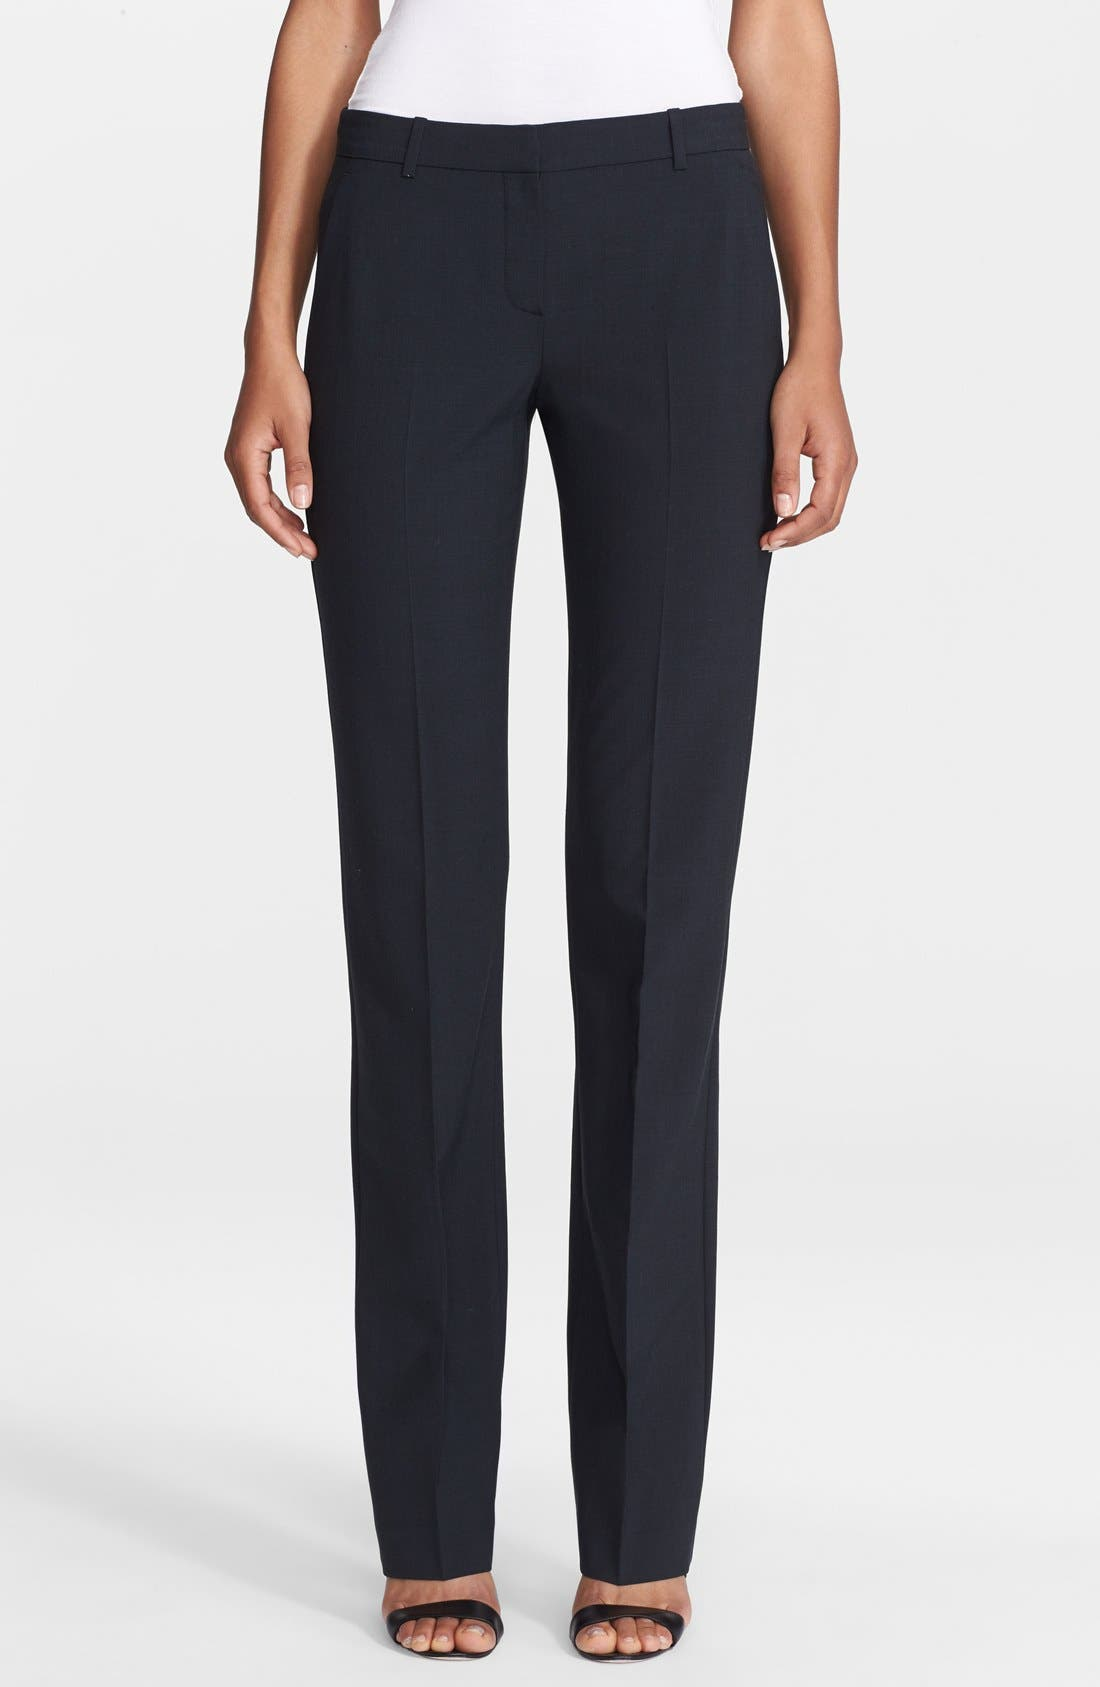 Main Image - Theory 'Emery 2' Stretch Pants